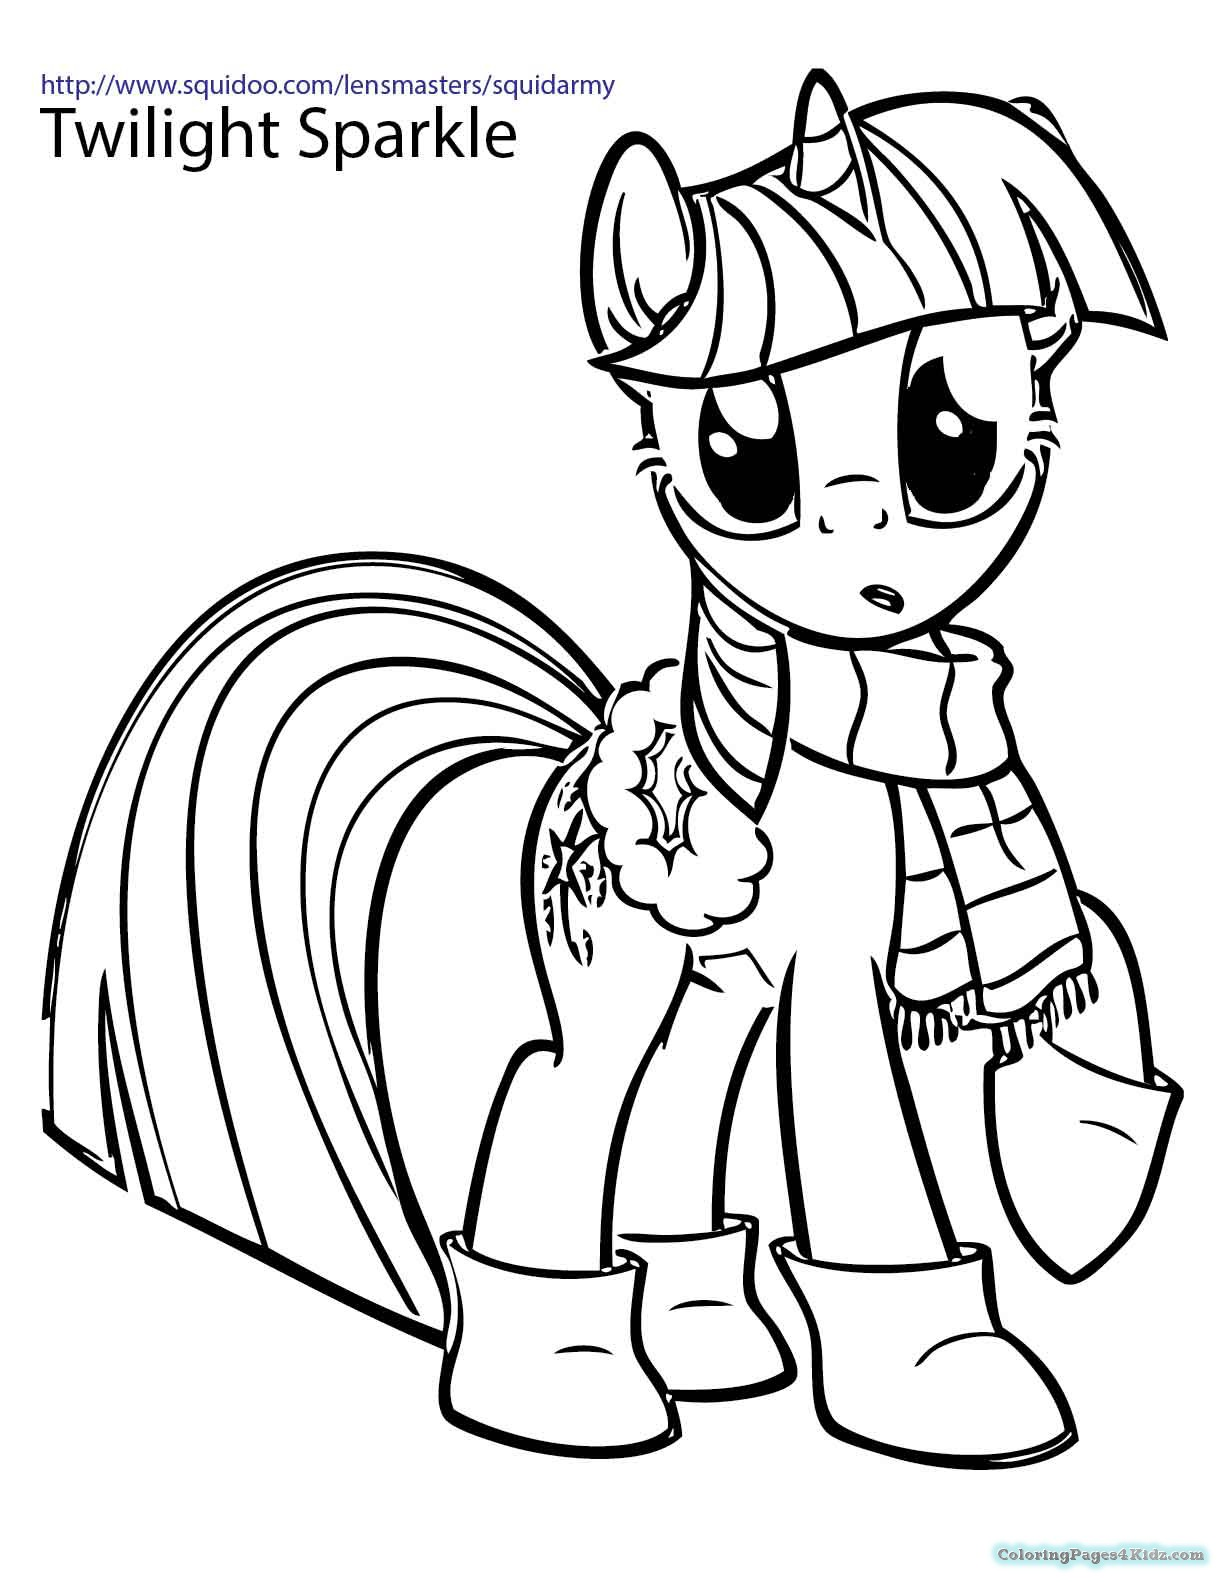 coloring pages twilight sparkle twilight sparkle coloring pages best coloring pages for kids coloring pages sparkle twilight